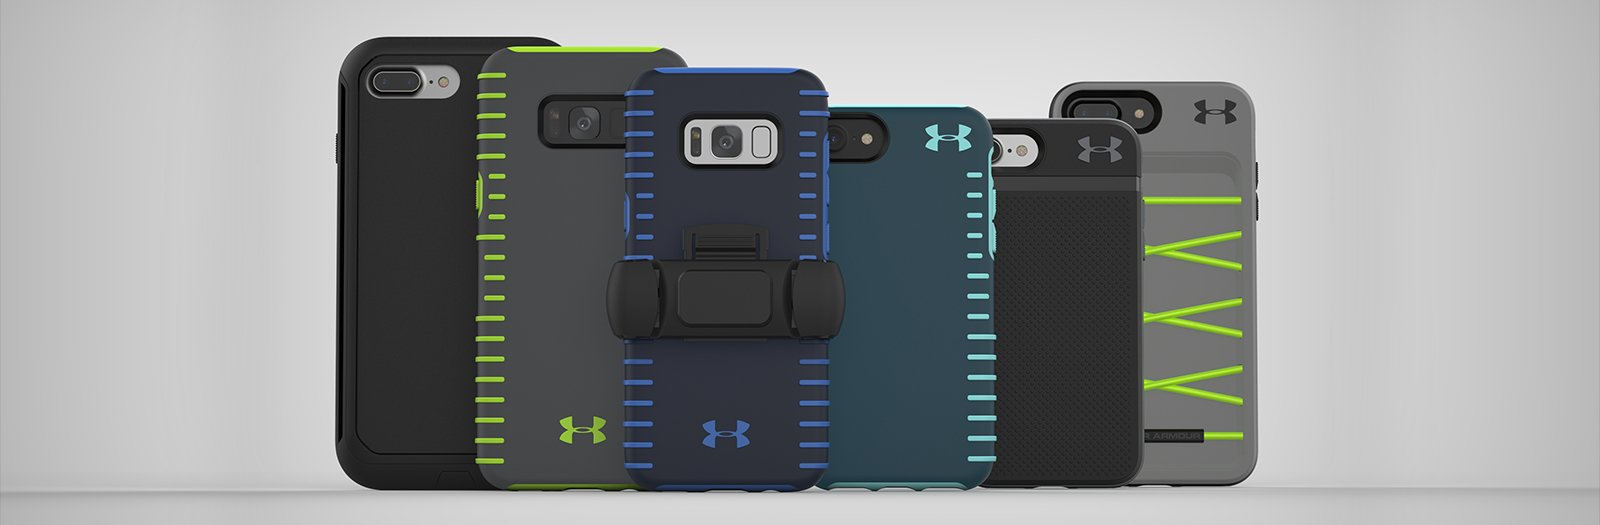 d91c75017 Collection of different color   size UA Phone Cases in a row featuring a UA  Phone